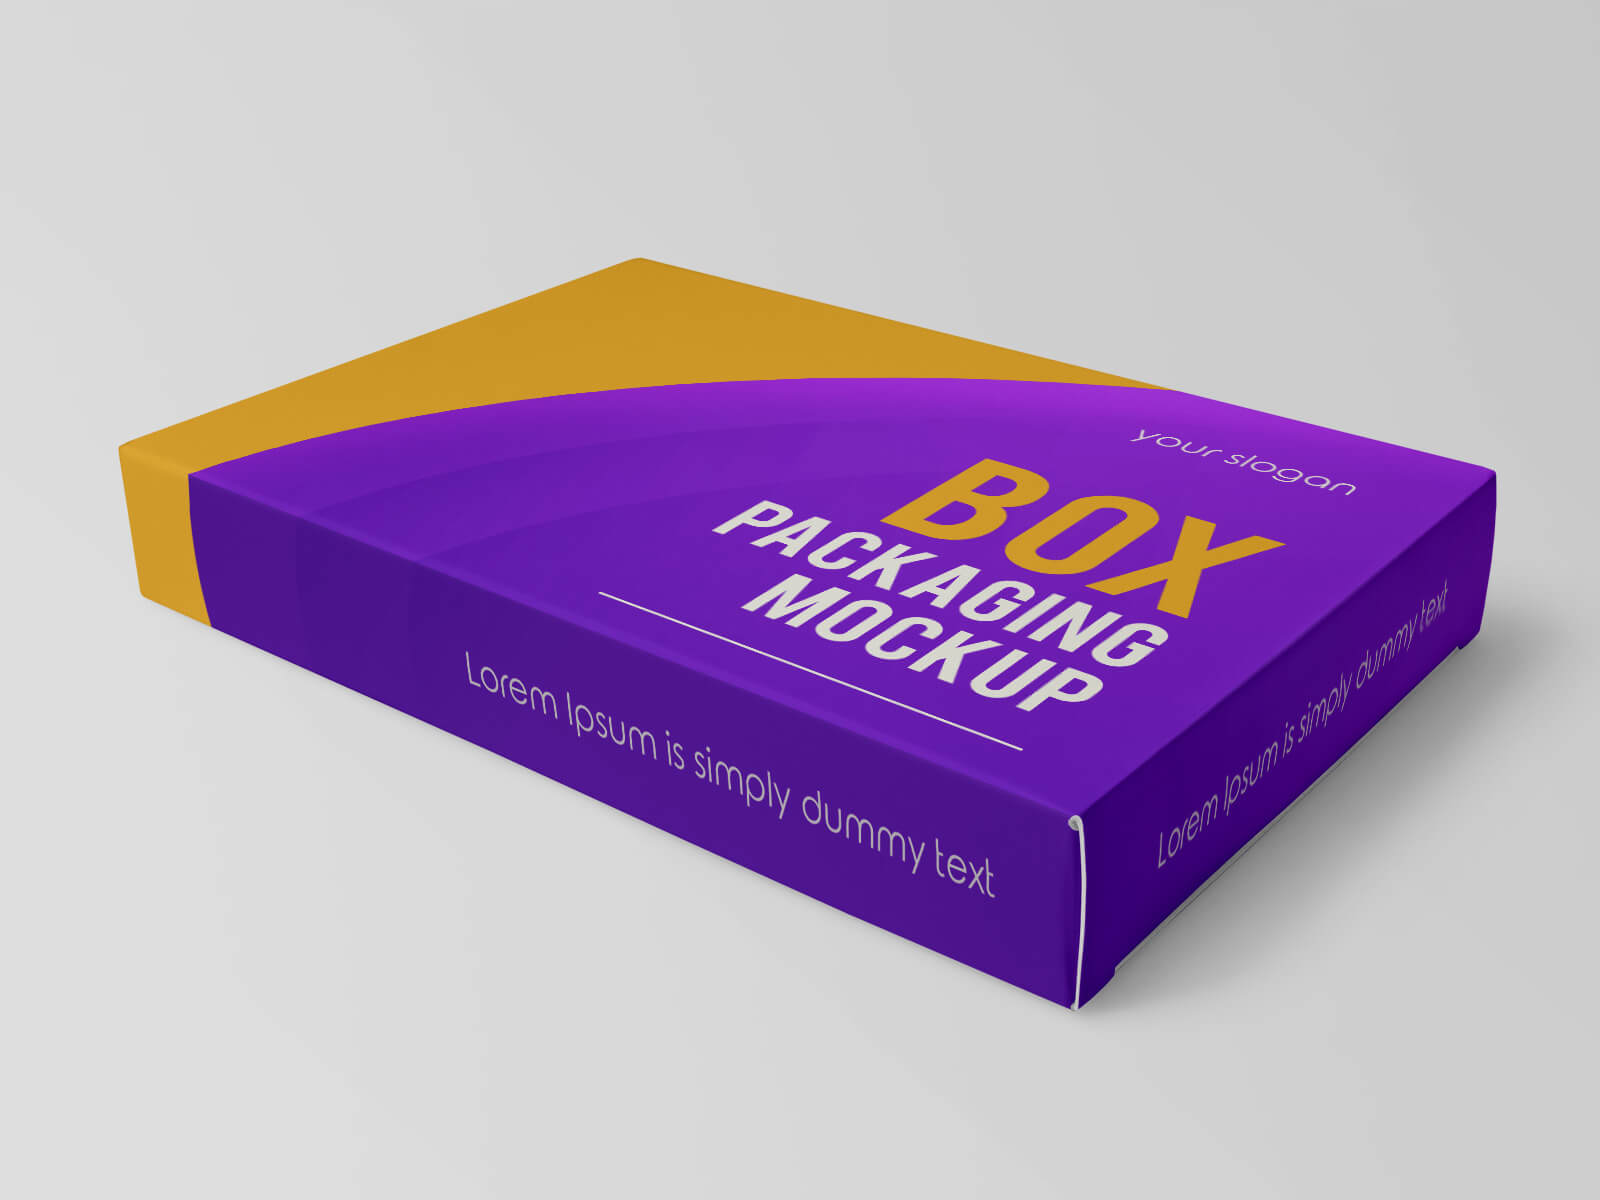 Free Rectangle Box Packaging Mockup PSD Set (3)